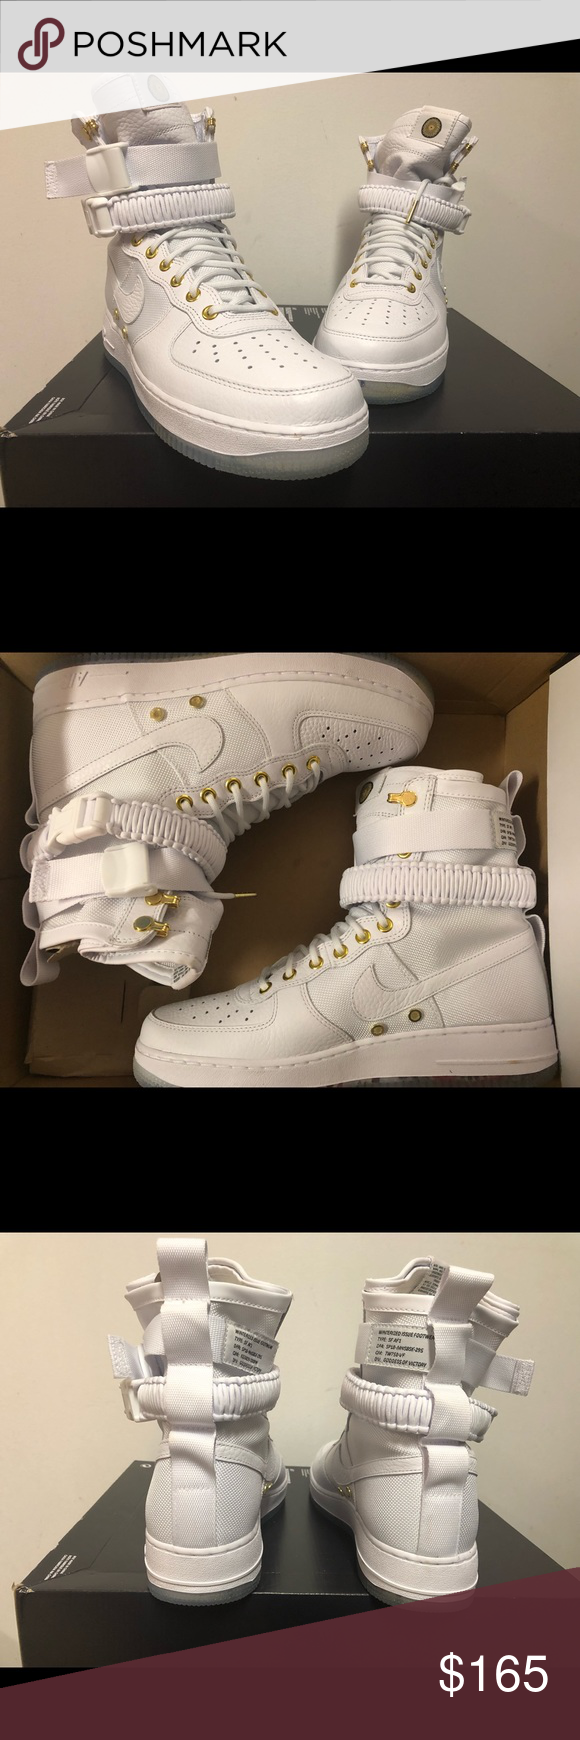 great fit ca5d8 68747 Nike SF AF1 LNY QS Chinese Lunar New Year White 100% authentic and  deadstock Box lid was removed for display Fast shipping Nike Shoes Sneakers